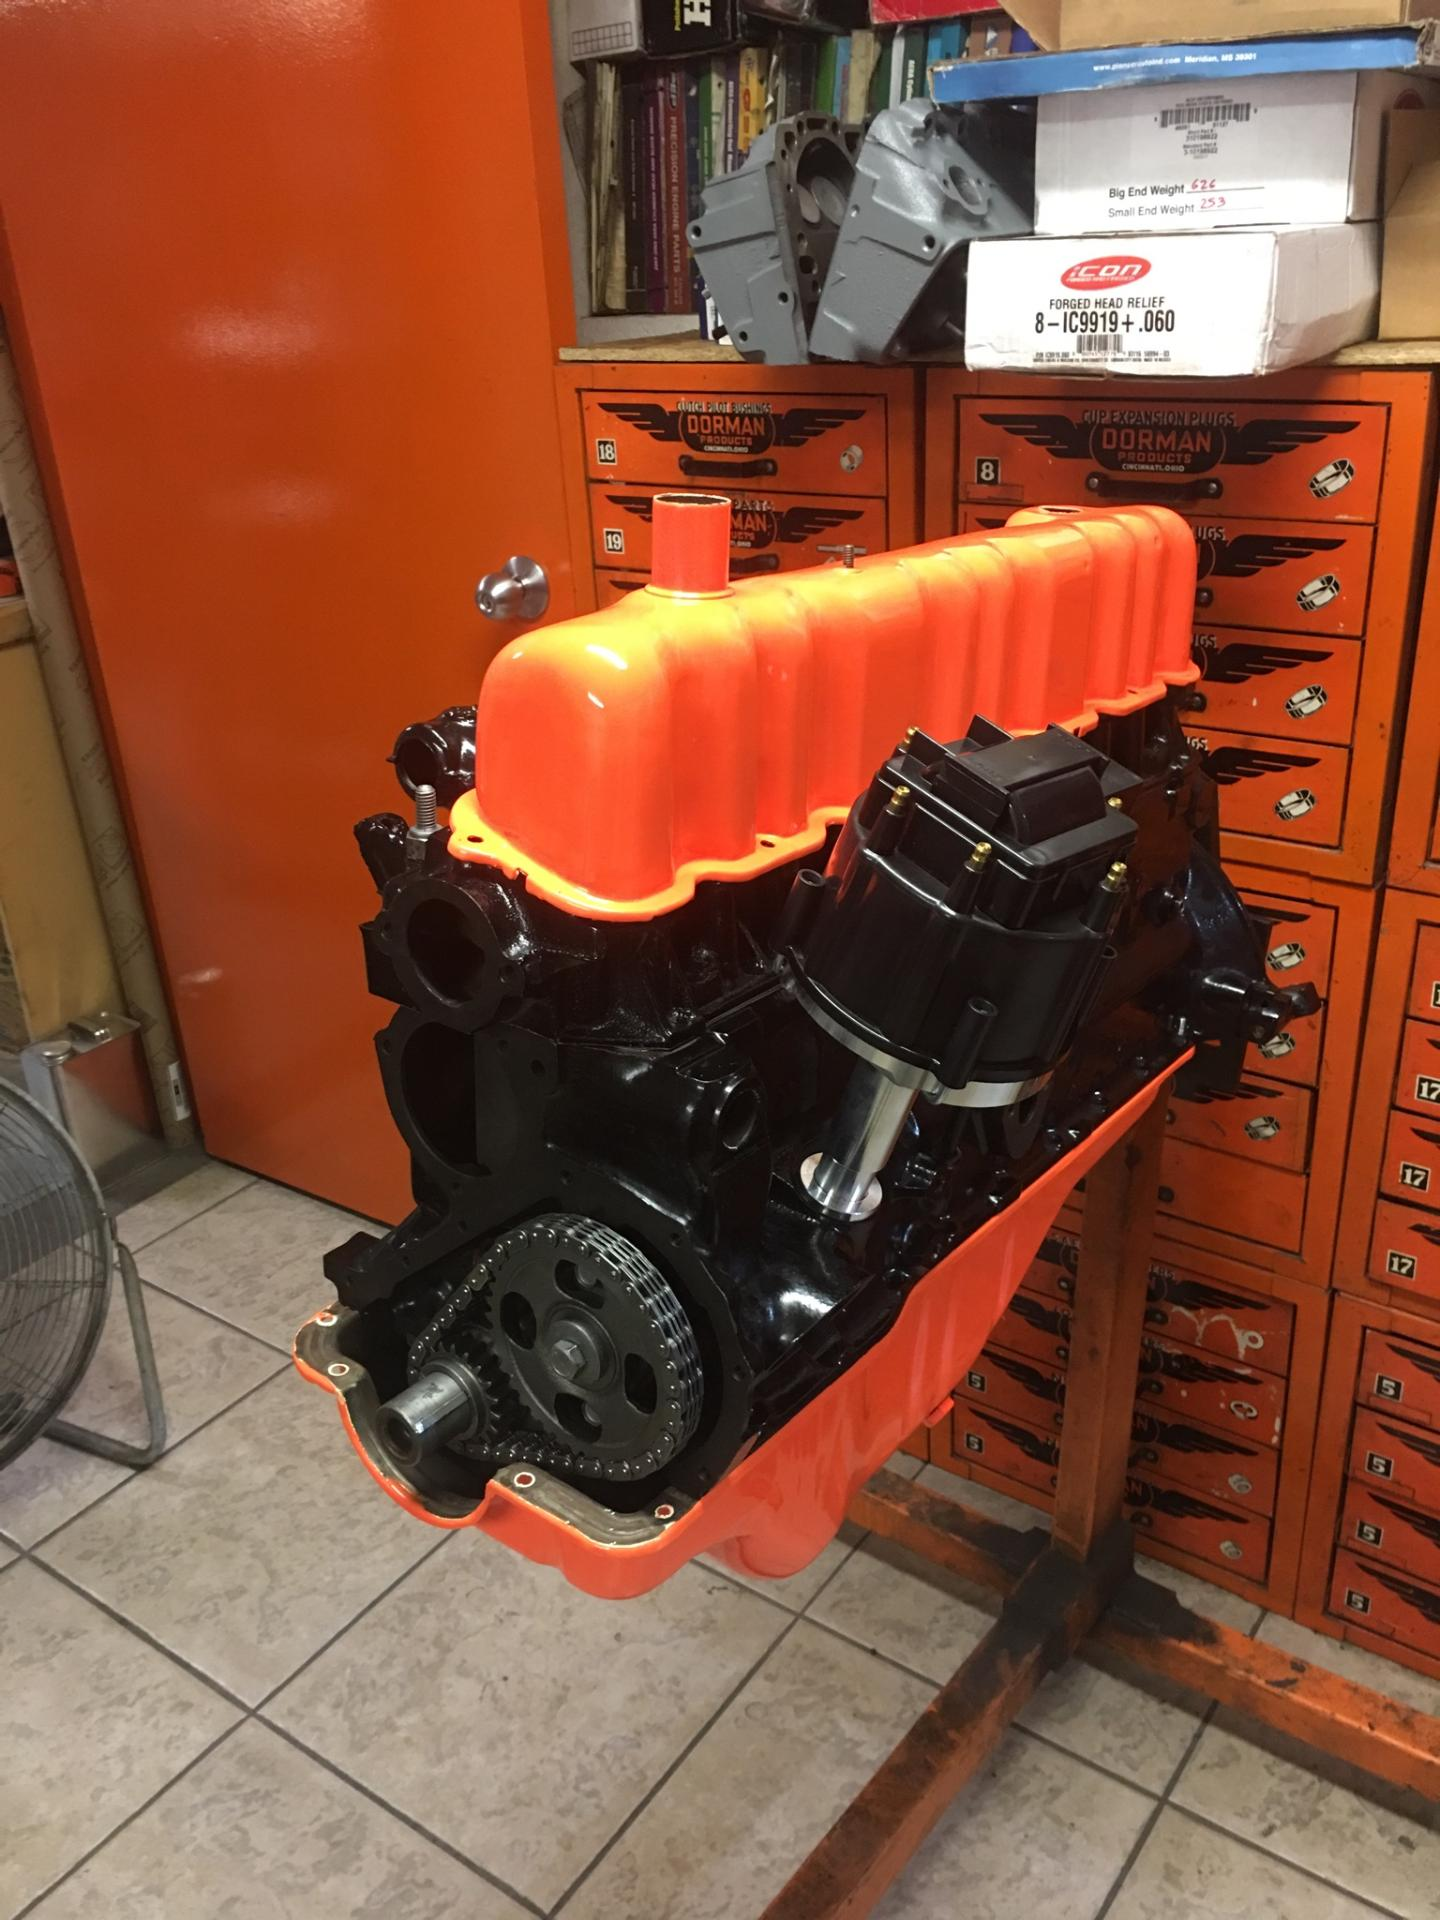 Ford Falcon 170 Engine Rebuild, Drag Race Motorcycle